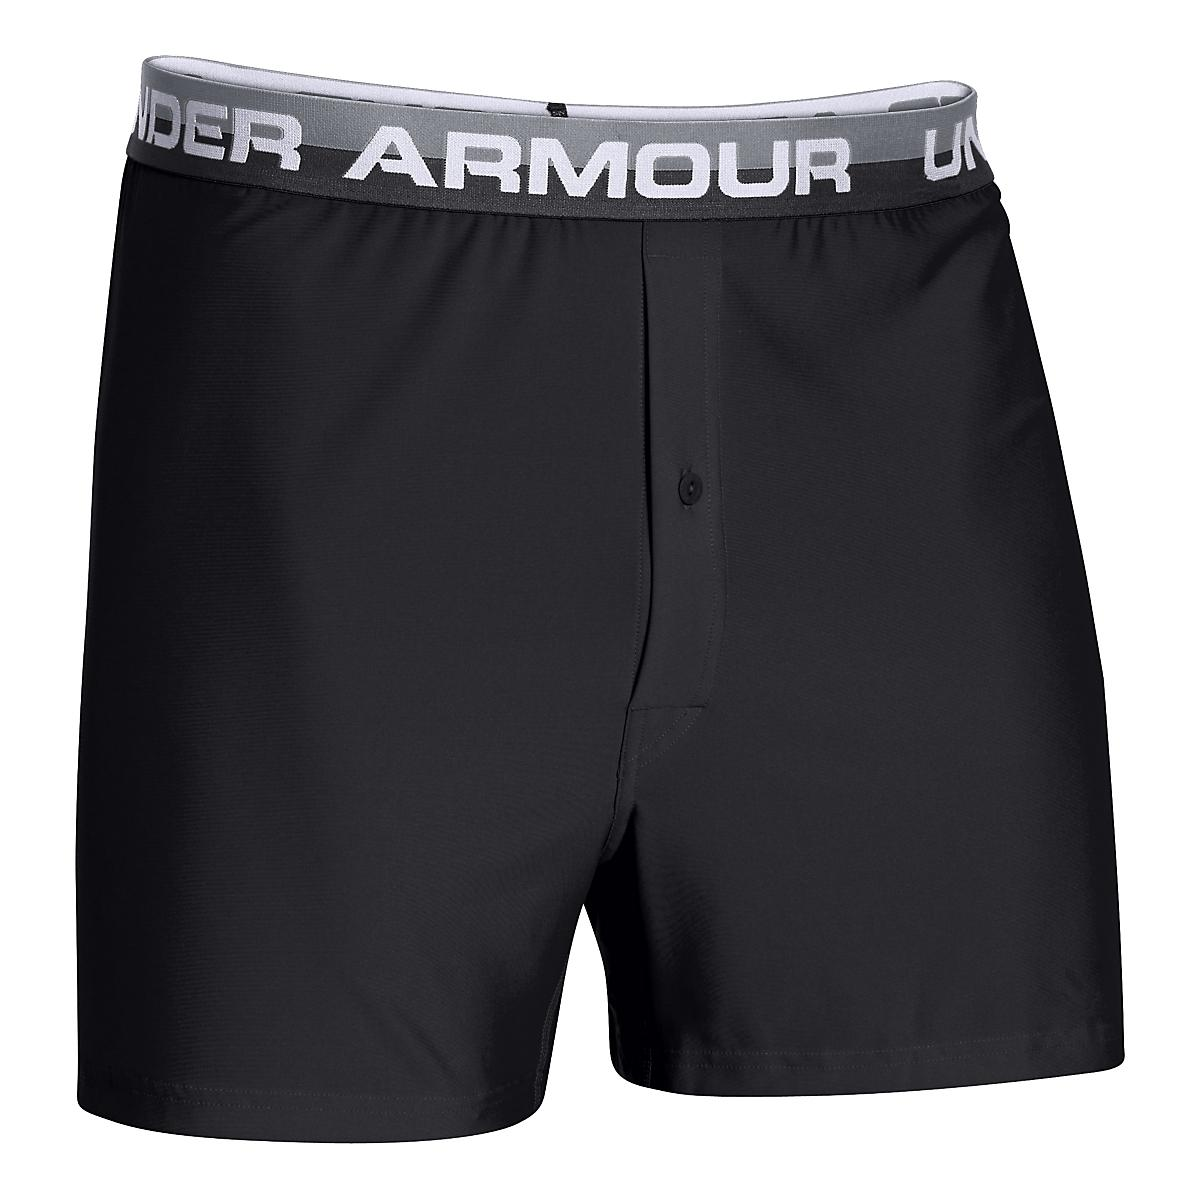 Men's Under Armour�Original Series Boxer (Hanging)